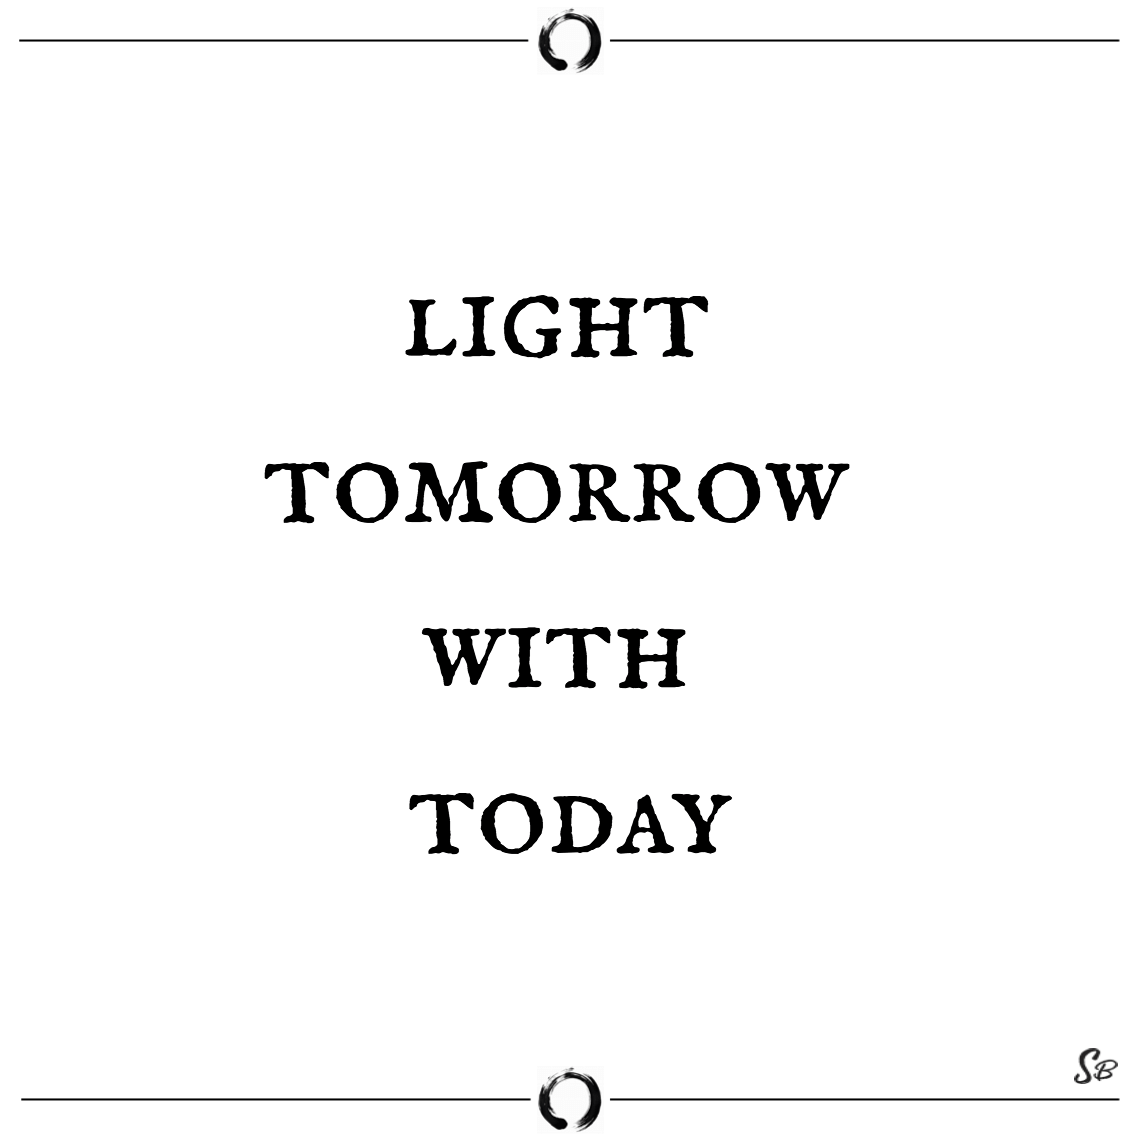 Light tomorrow with today elizabeth barrett